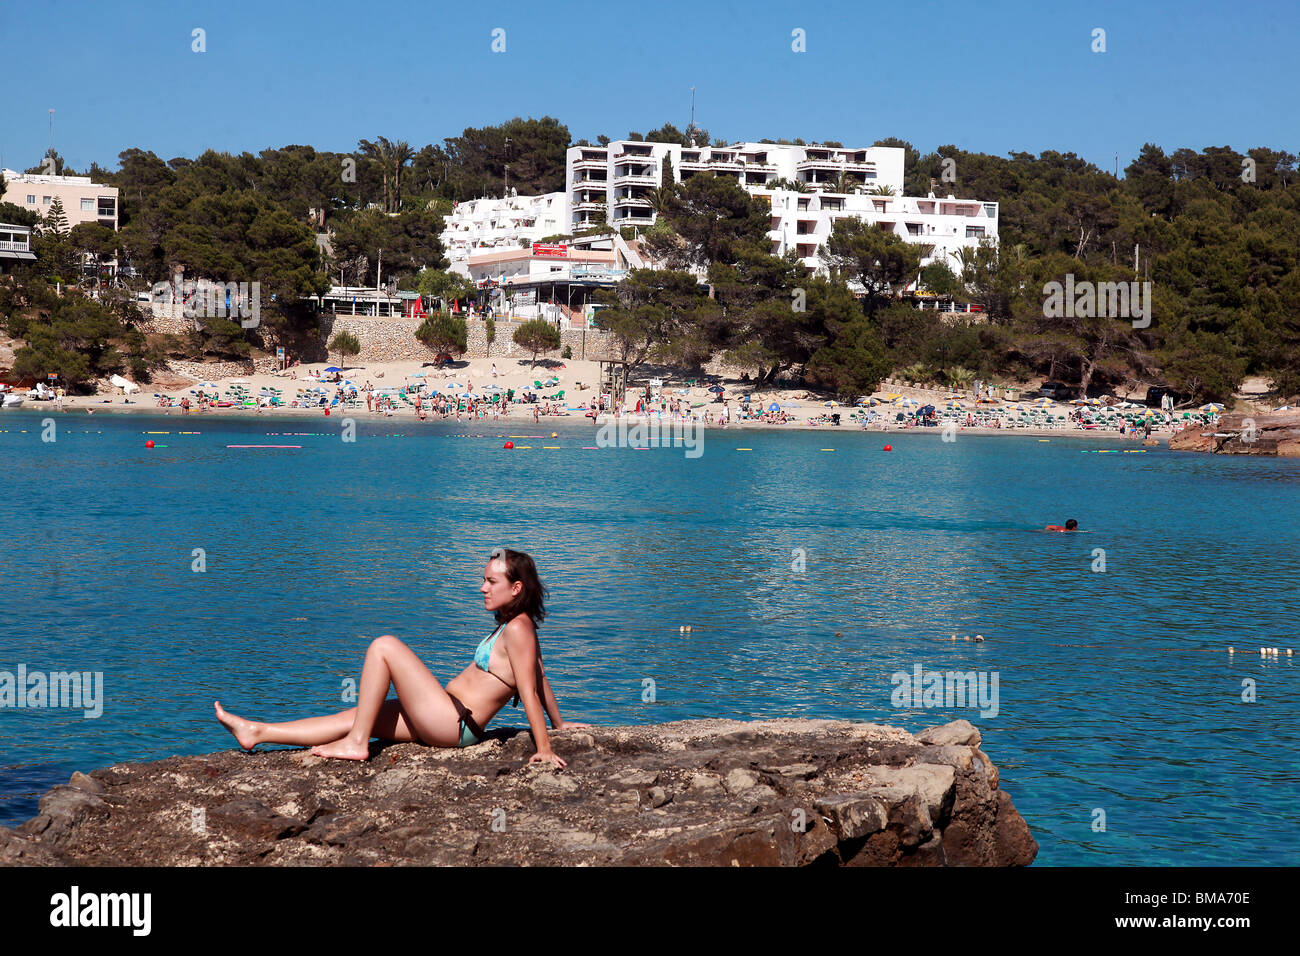 A sunbather enjoys the views of the beach at Portinatx on the island of Ibiza. - Stock Image